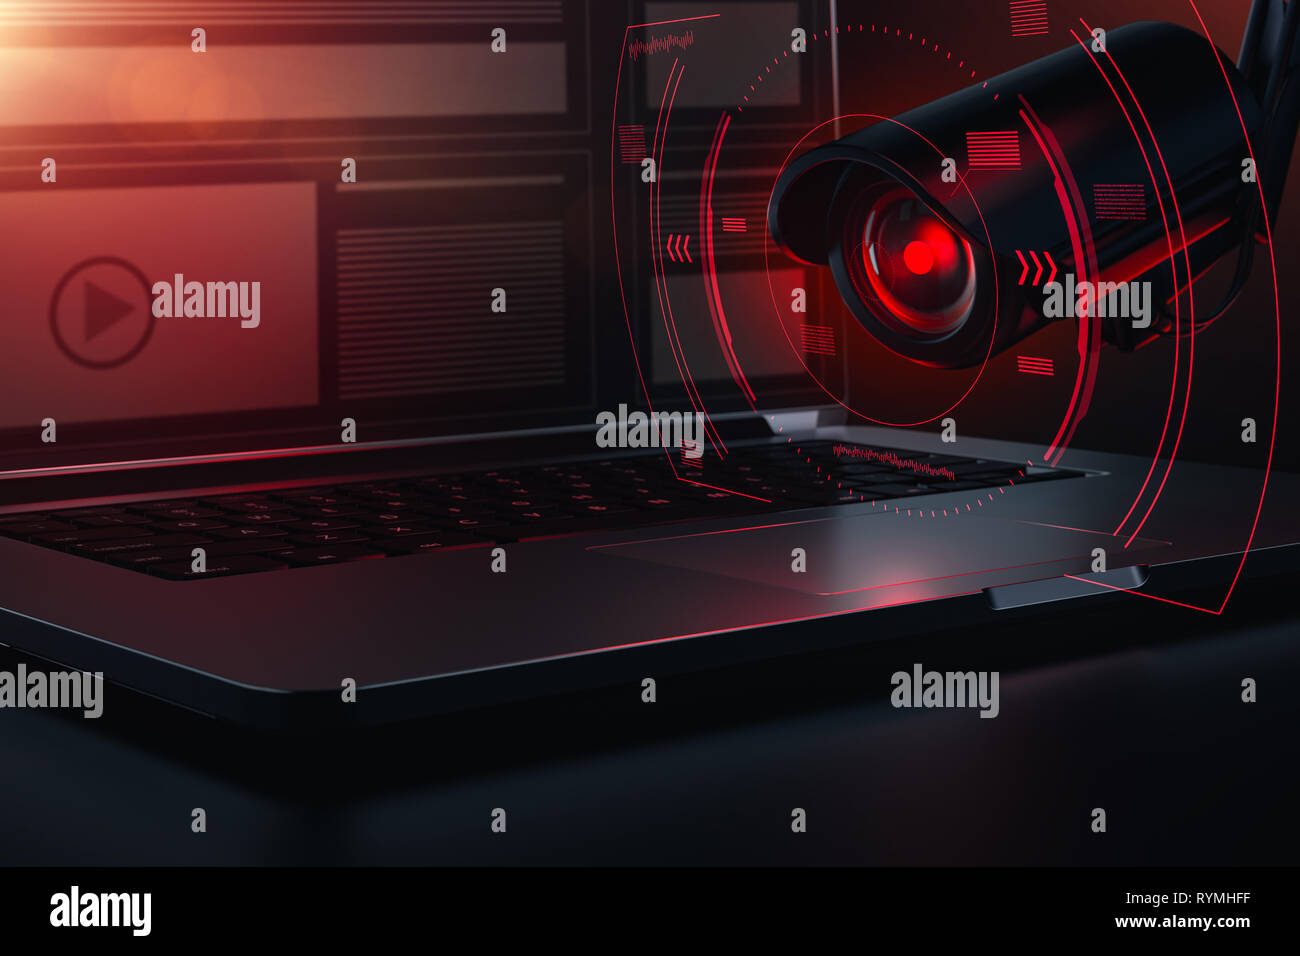 Red camera eye scanning computer for passwords, sensible